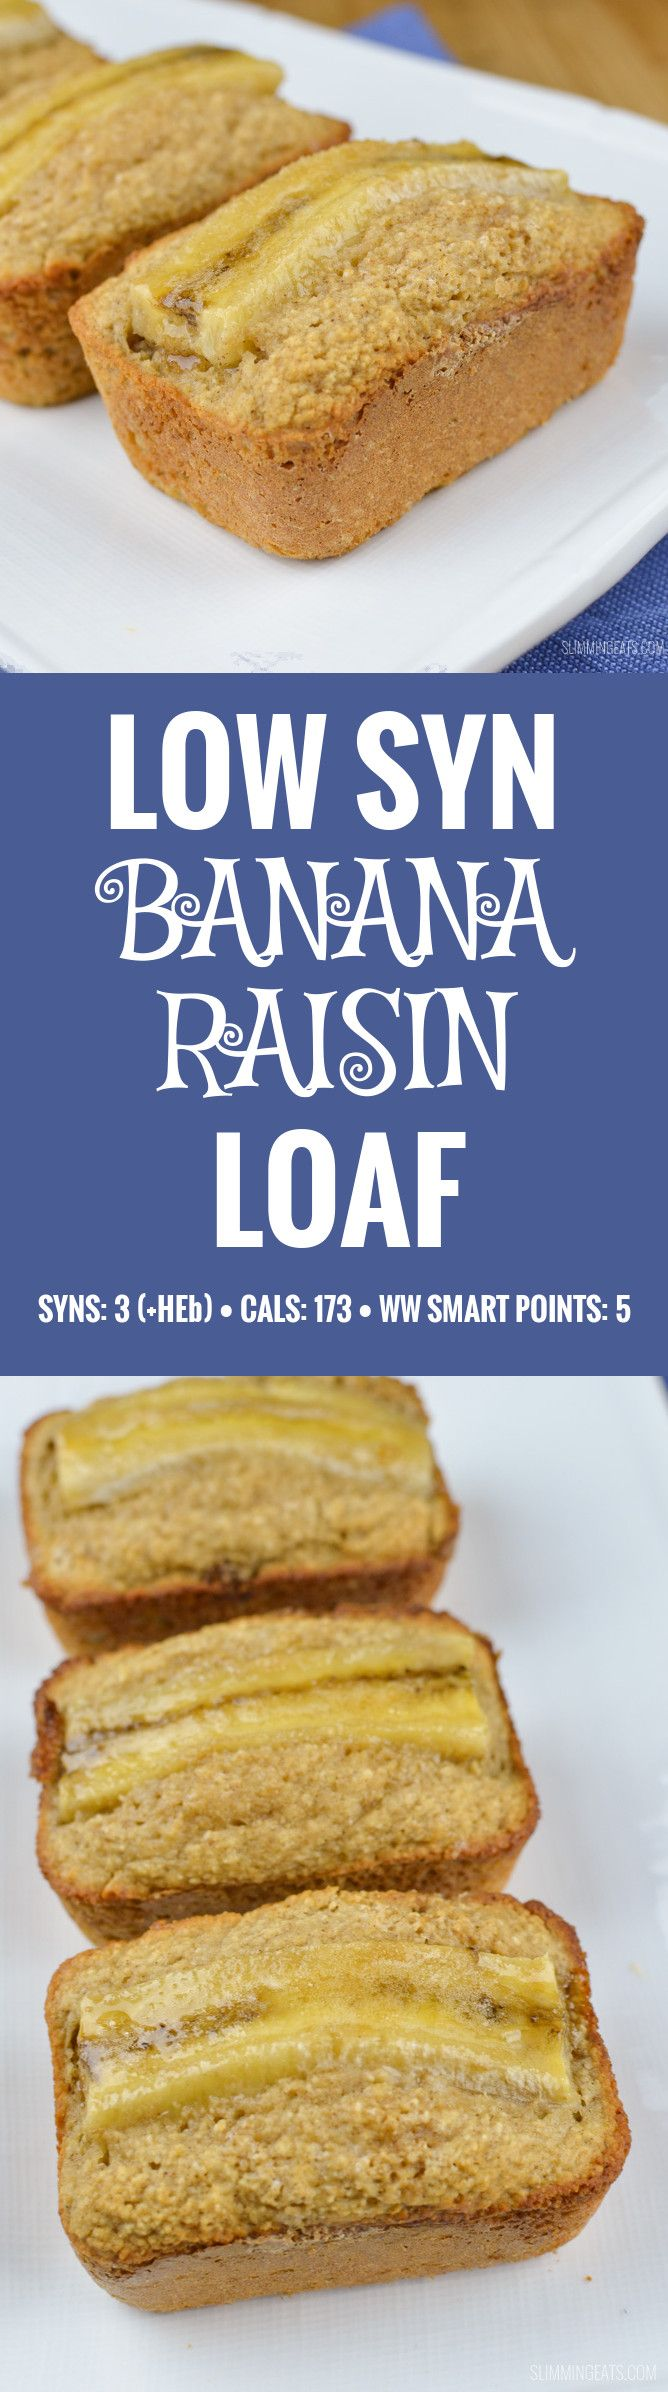 Slimming World Low Syn Mini Banana Raisin Loaf - gluten free, vegetarian, Slimming World and Weight Watchers friendly